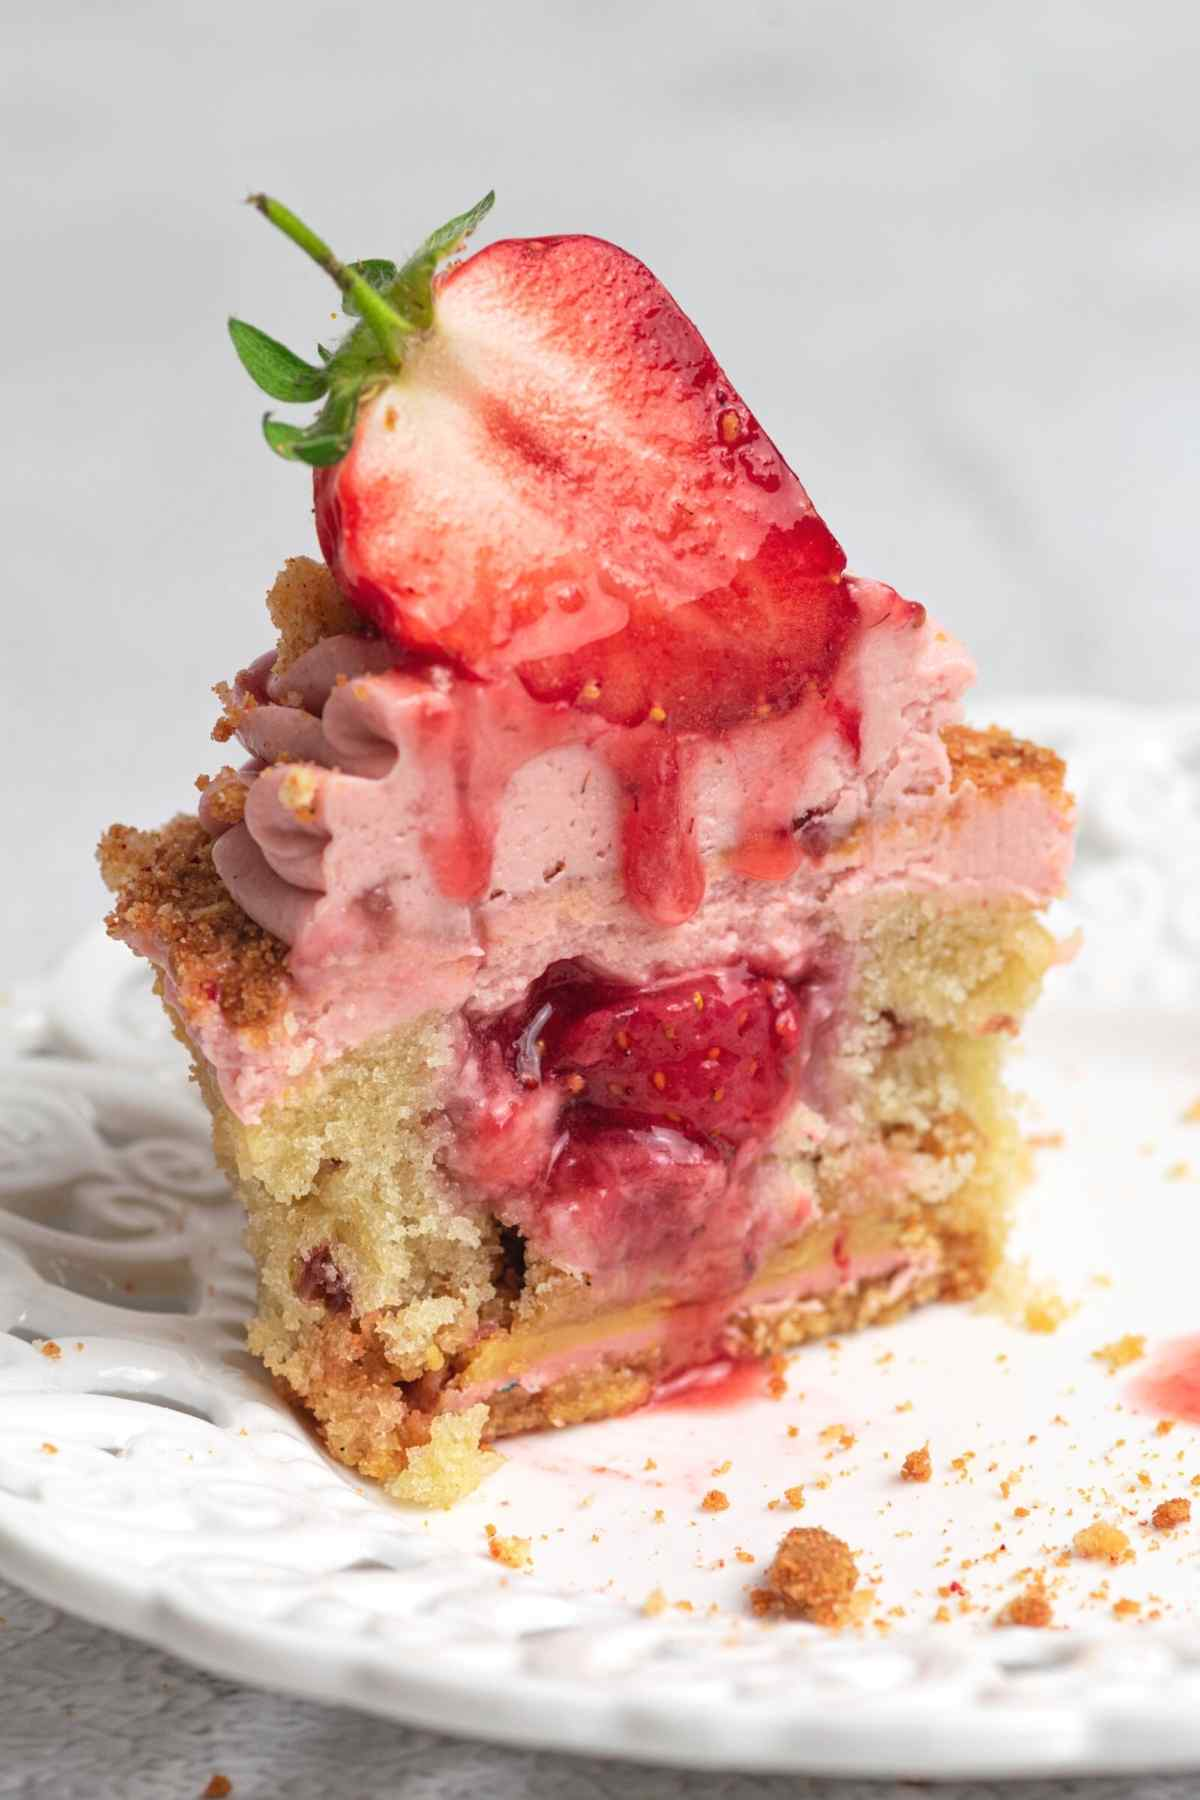 Cross section of cupcake showing strawberry filling